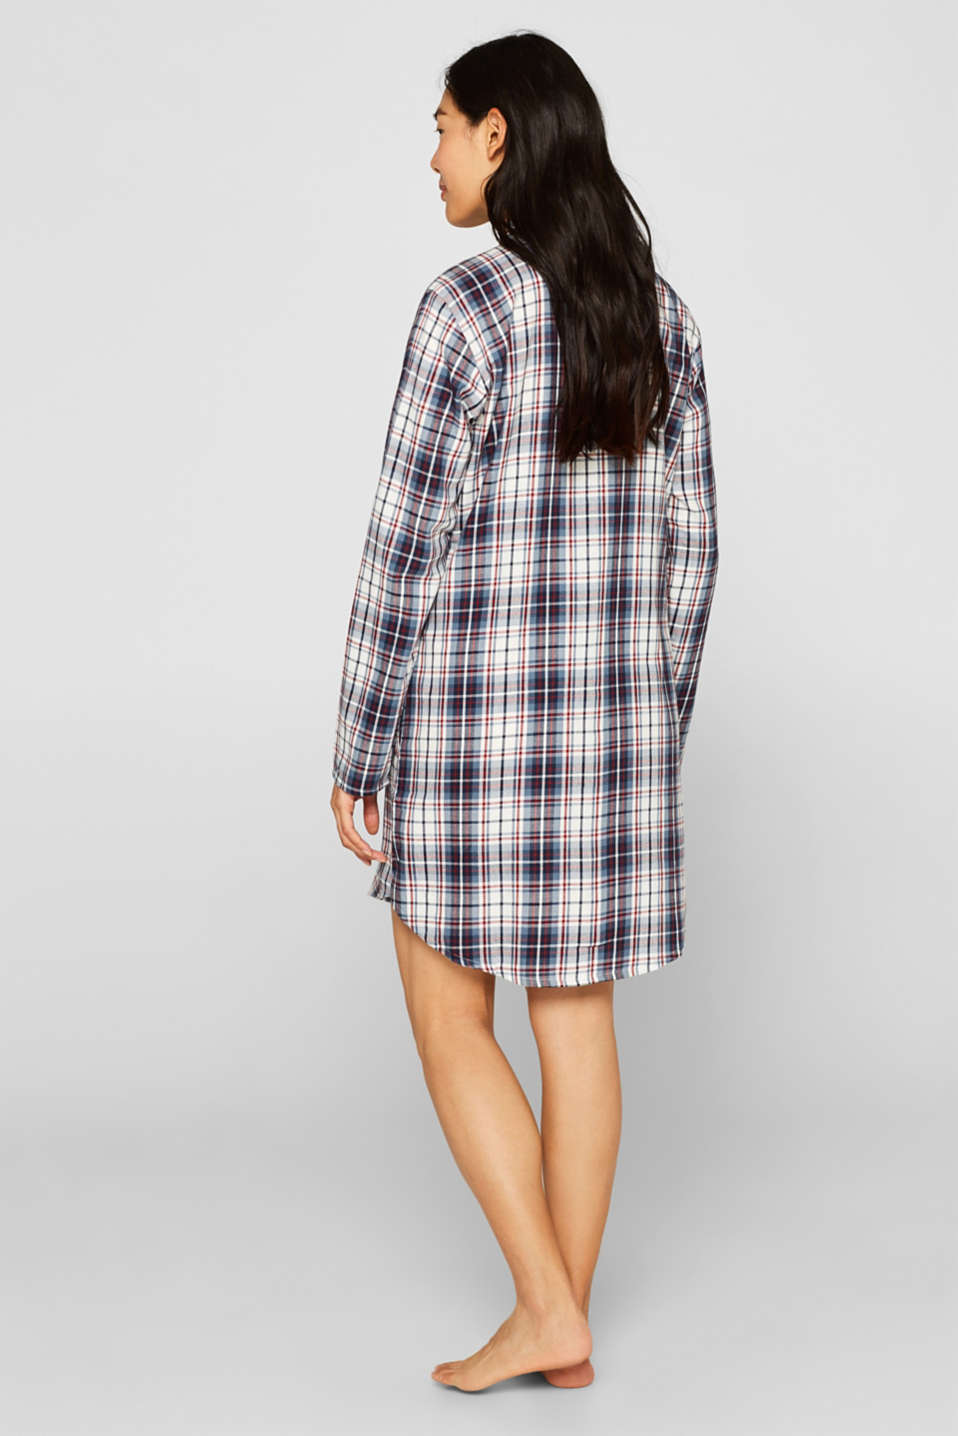 Flannel nightshirt made of 100% cotton, NAVY, detail image number 2